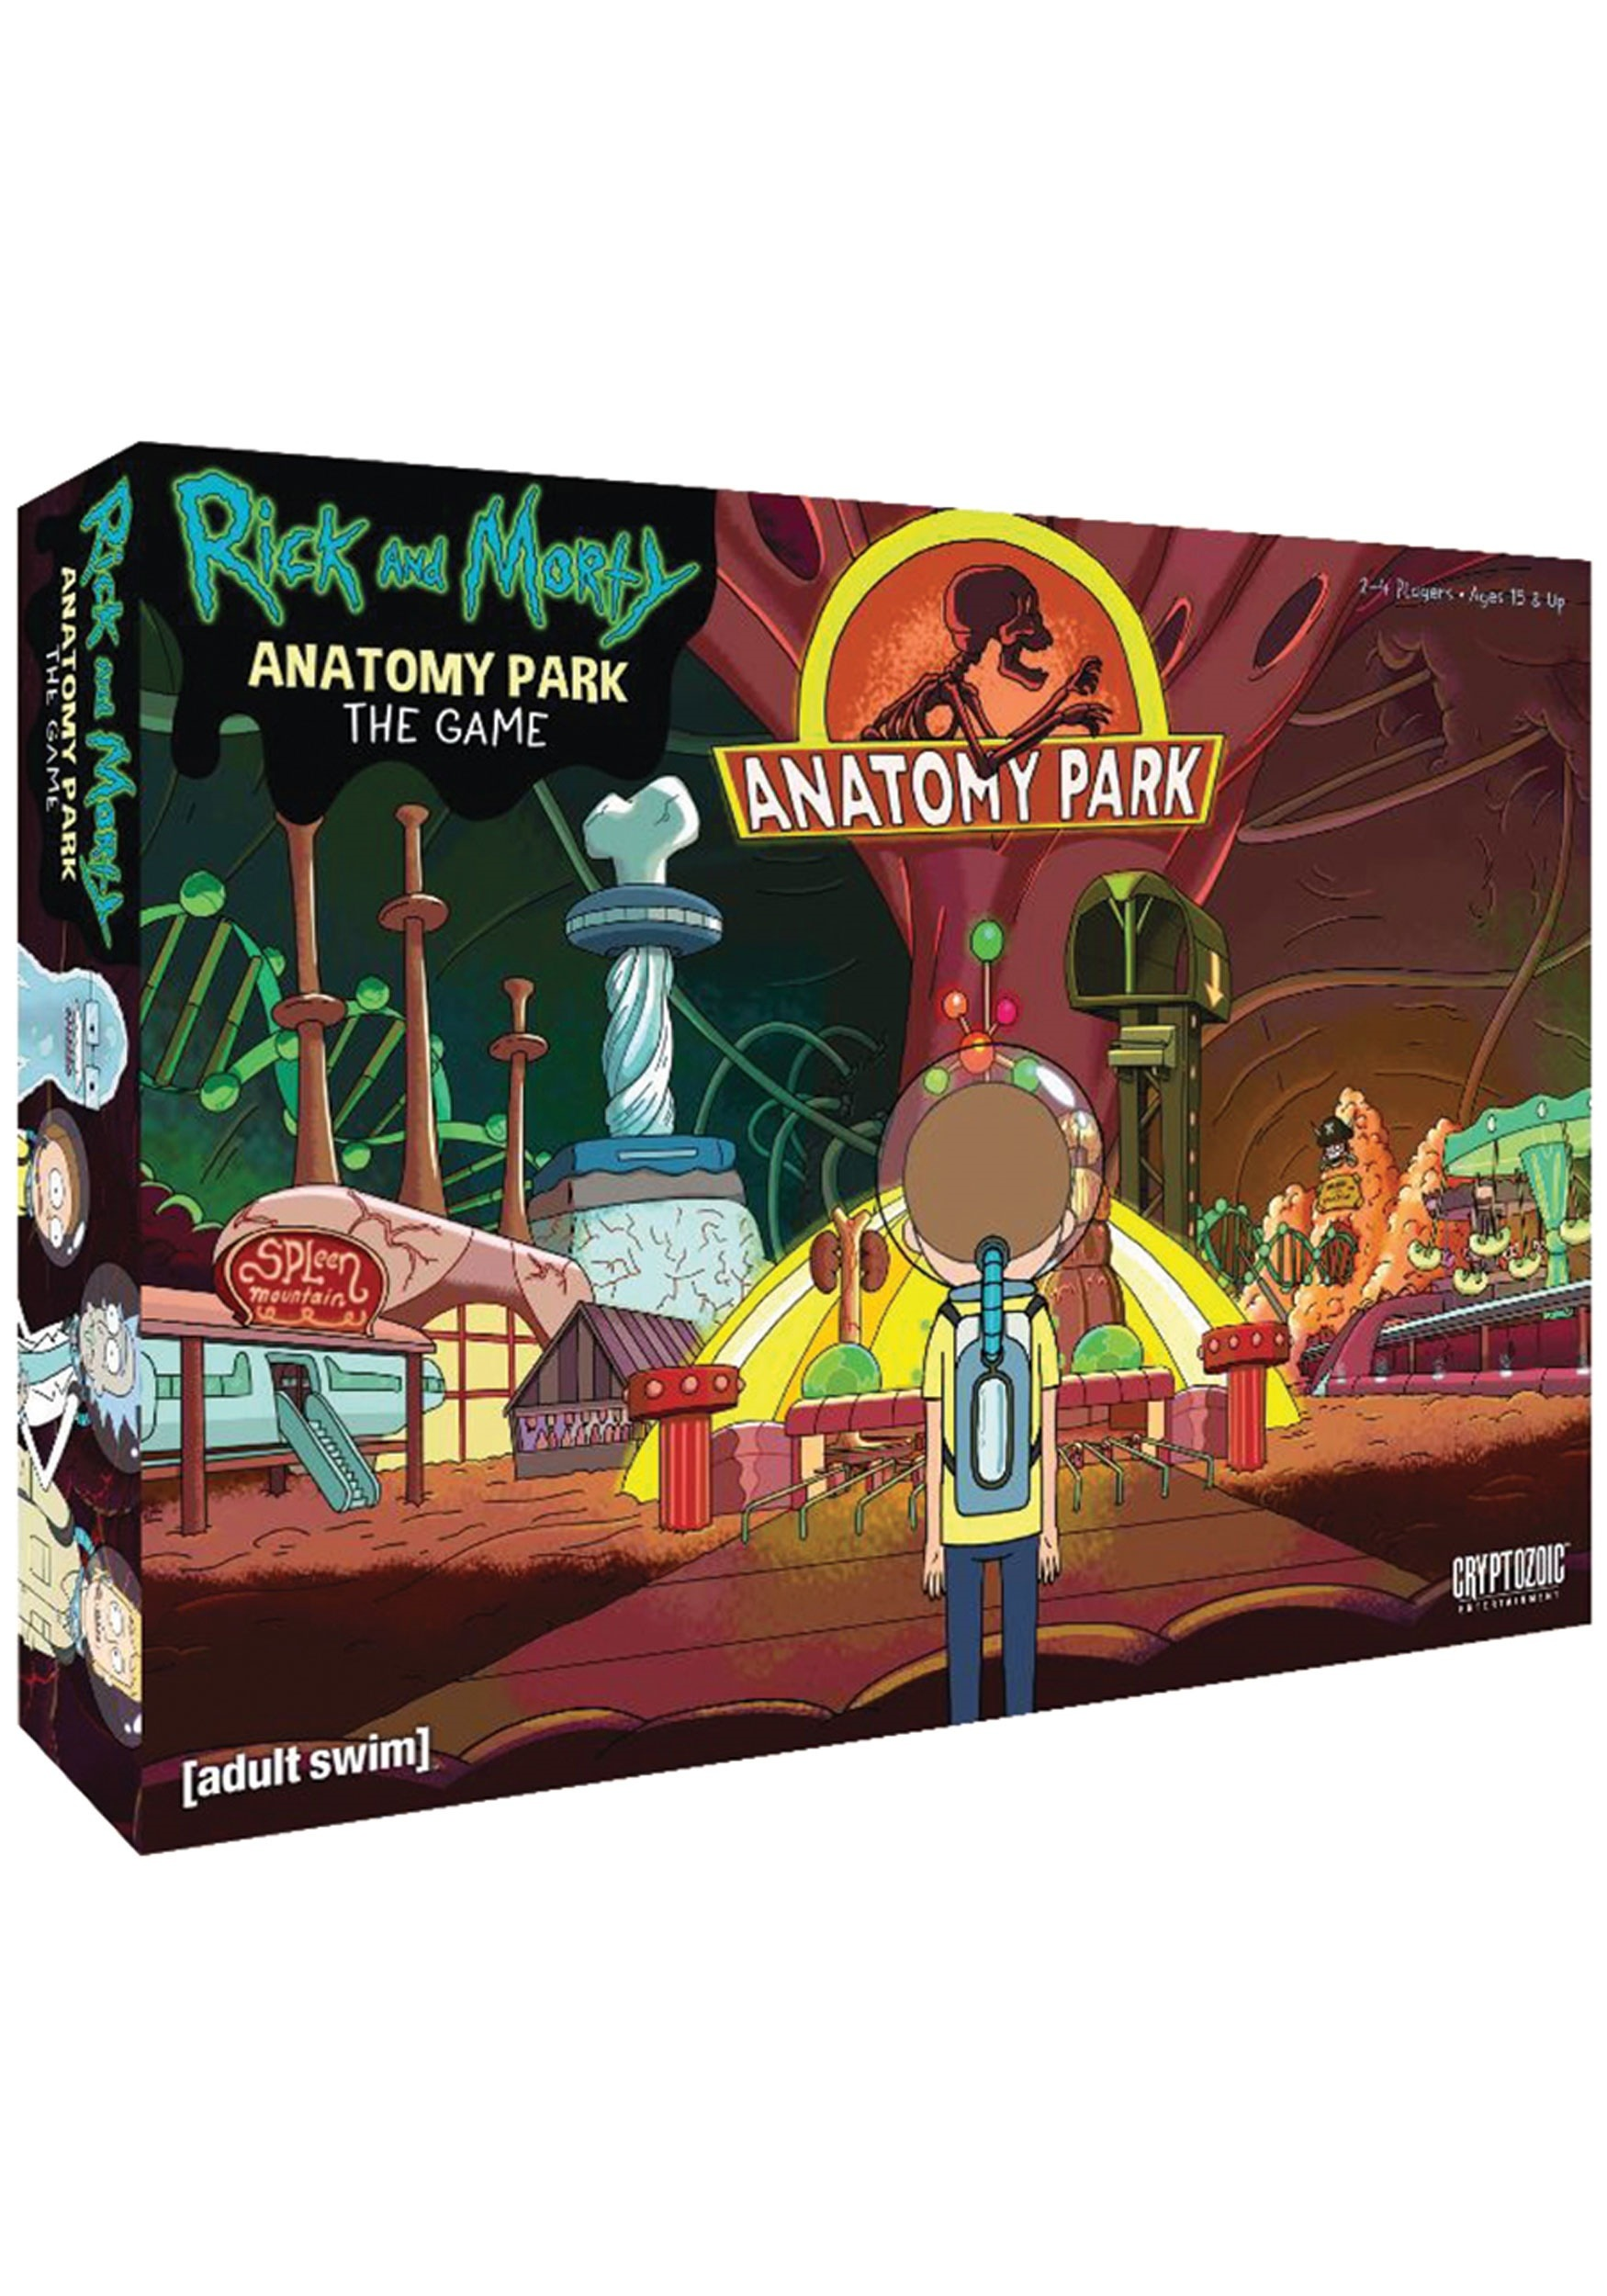 Rick_and_Morty:_Anatomy_Park-_The_Game